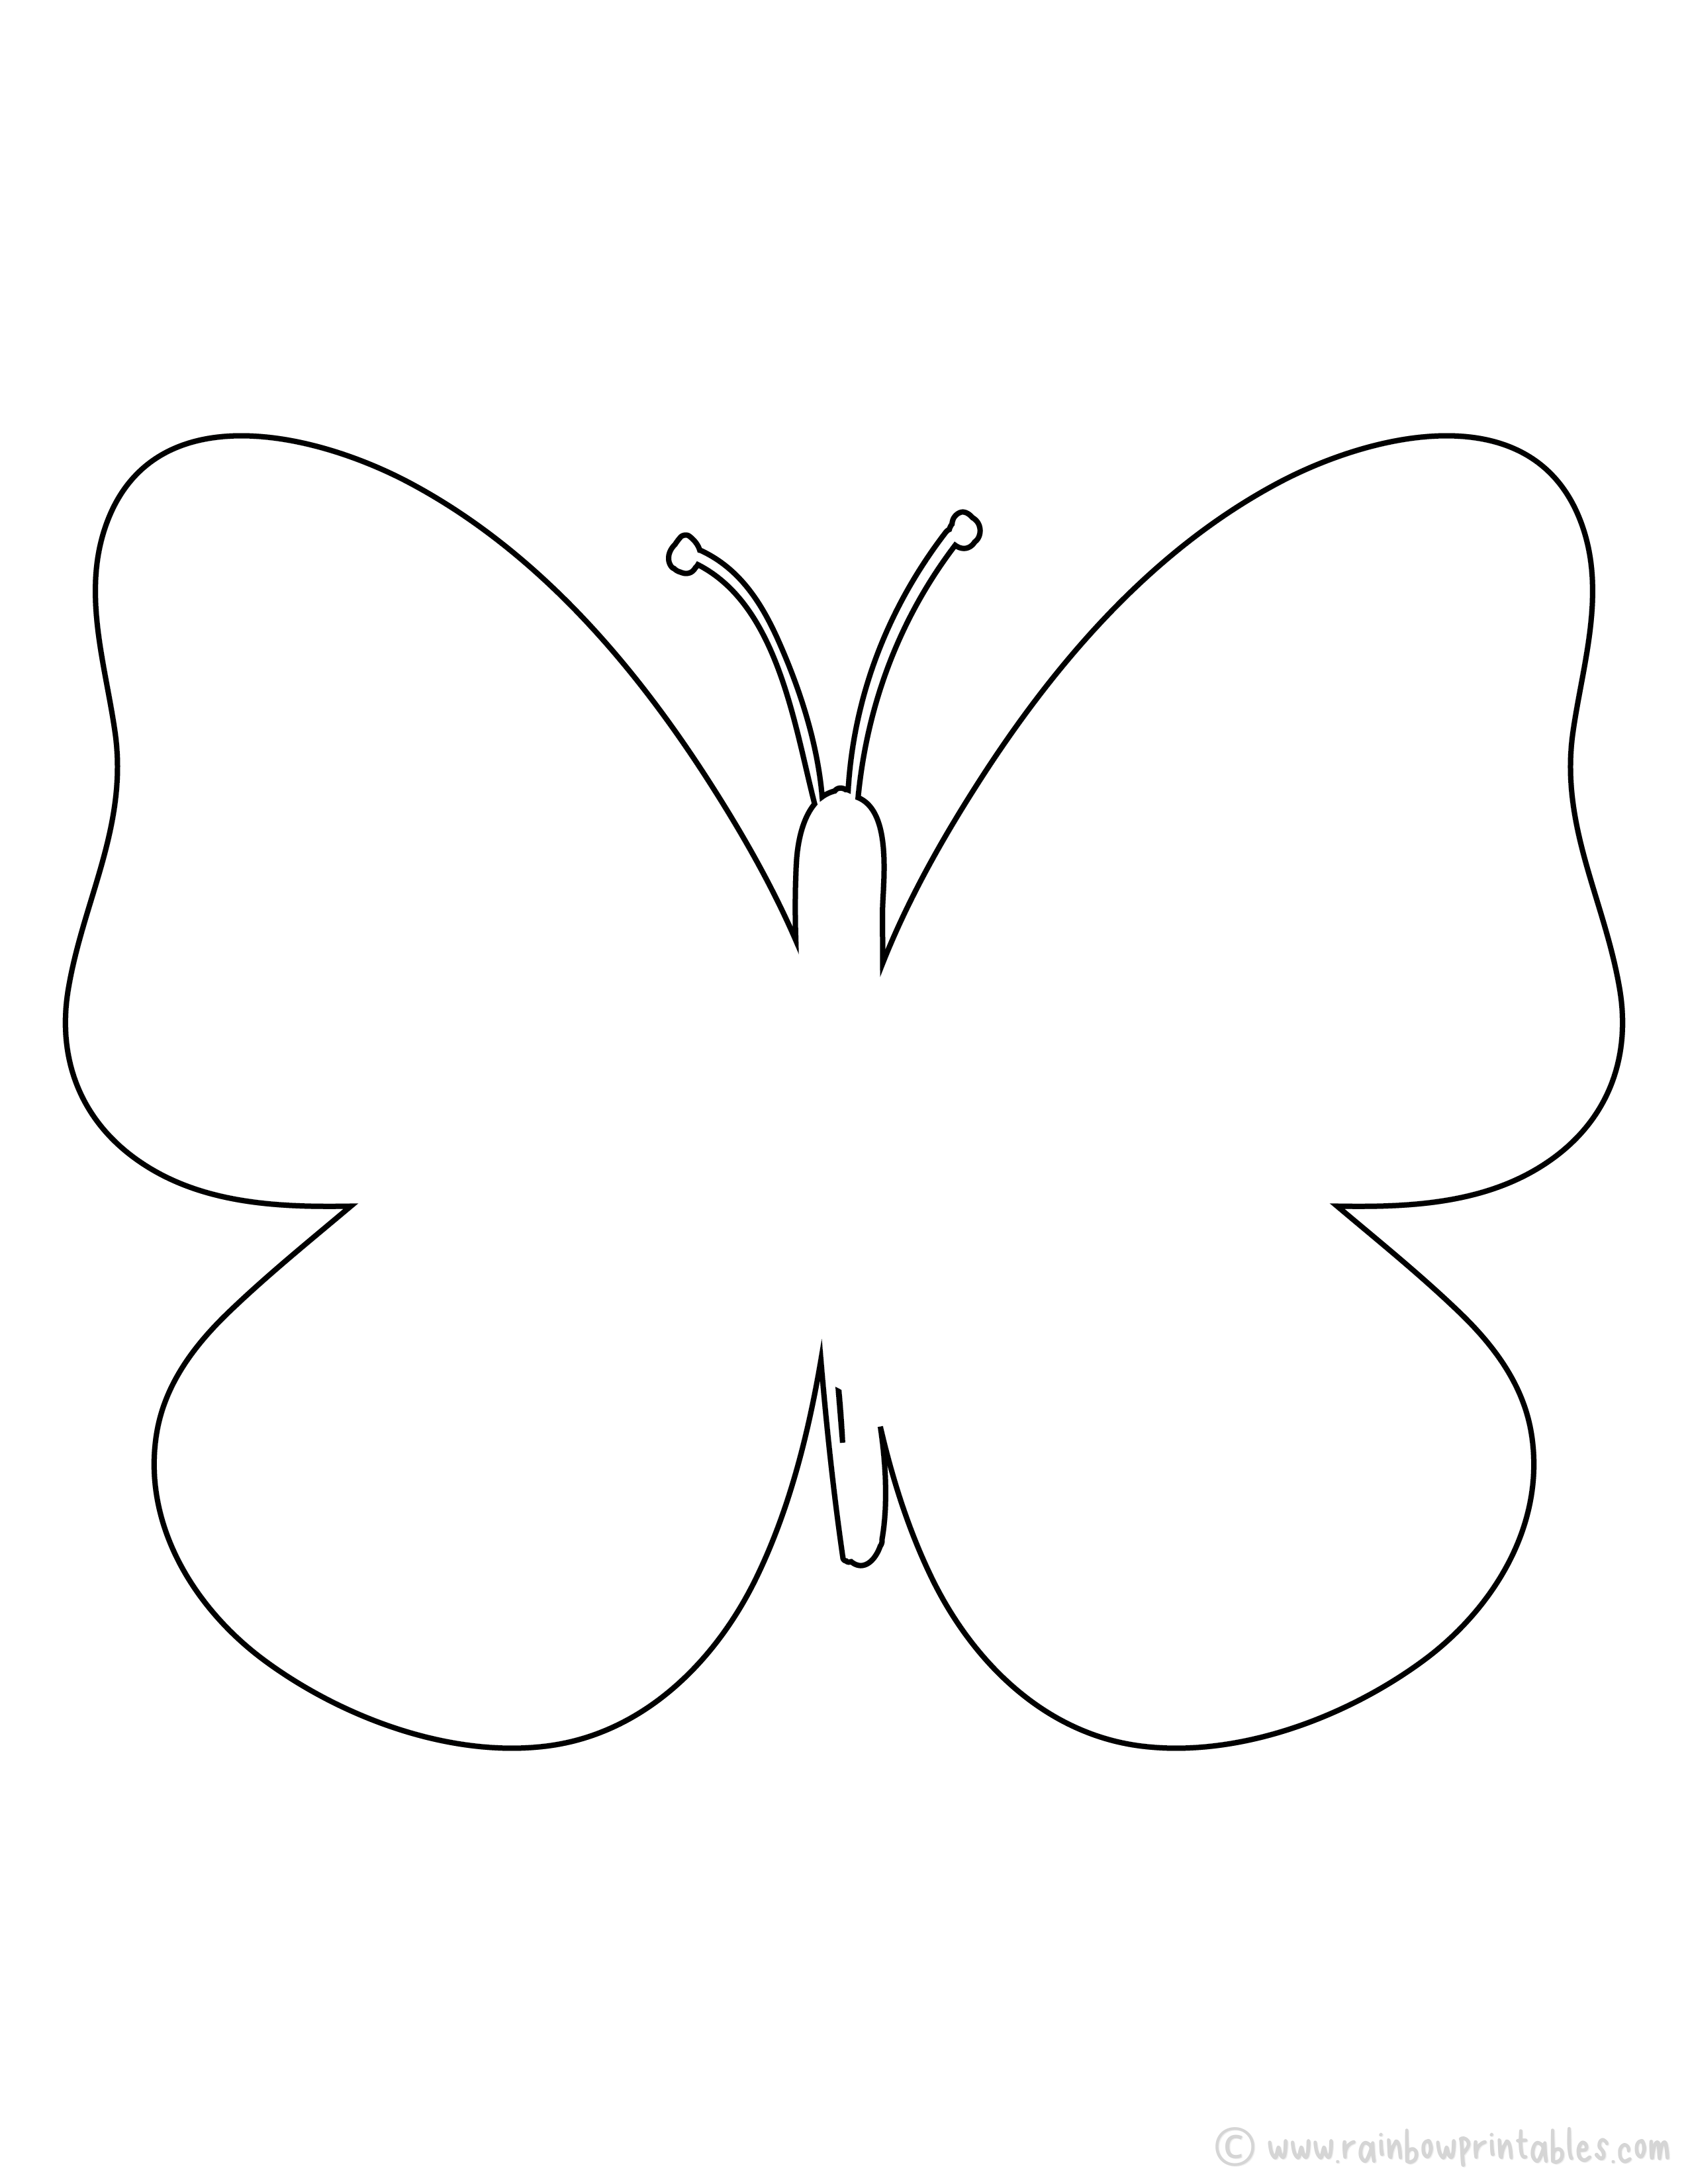 simple-butterfly-coloring-page-insect-for-kids-outline-doodle-illustration-printable